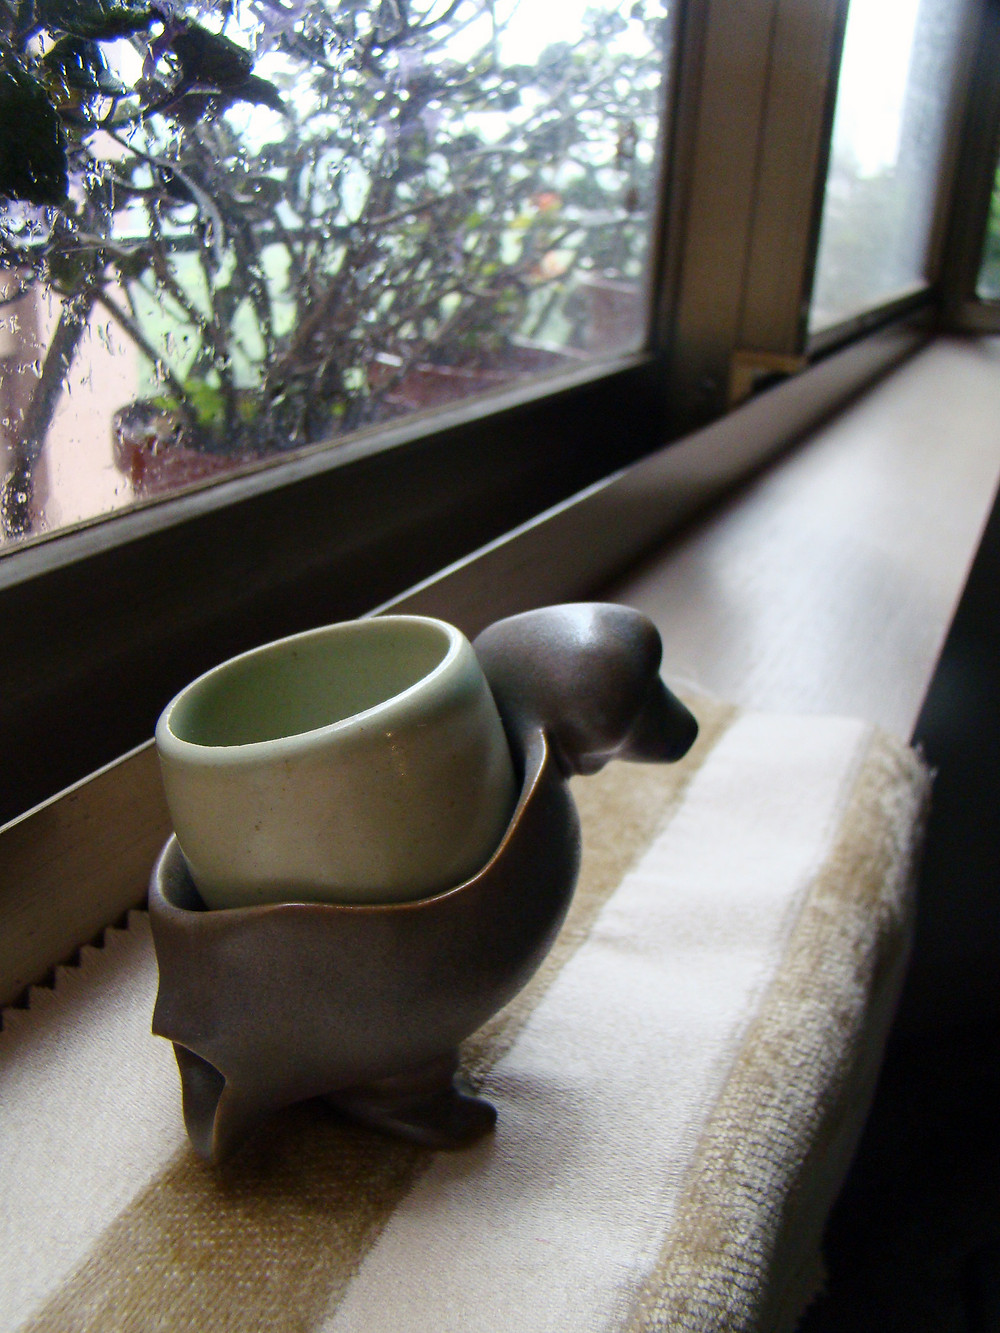 Camel Ako. A ceramic duck carrying a cup on her back.